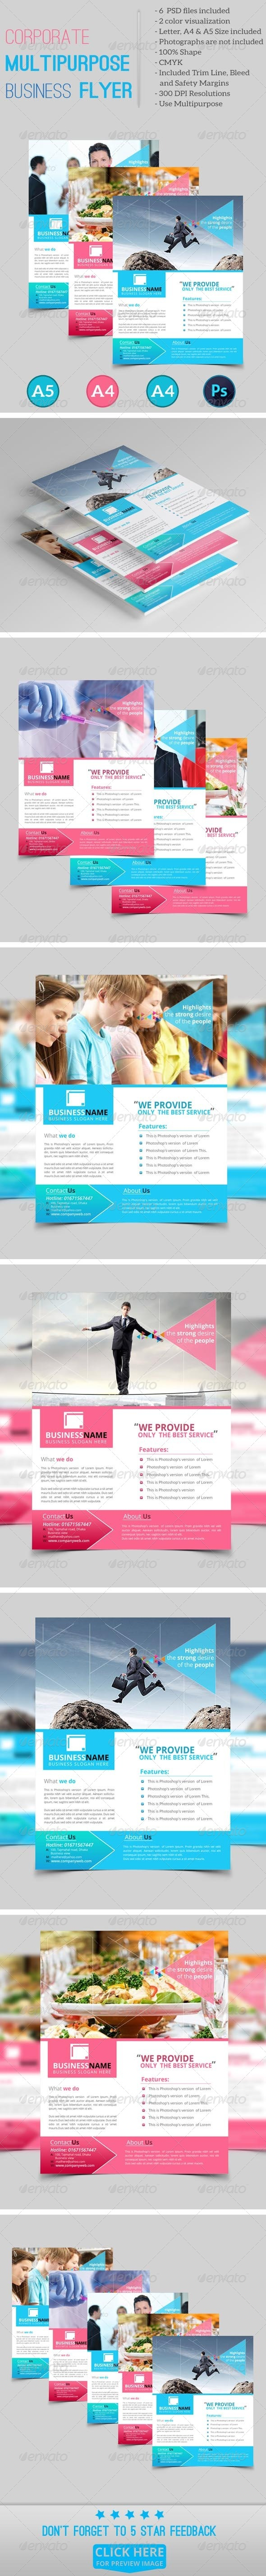 GraphicRiver Corporate Multipurpose Business Flyer vol.04 7971457